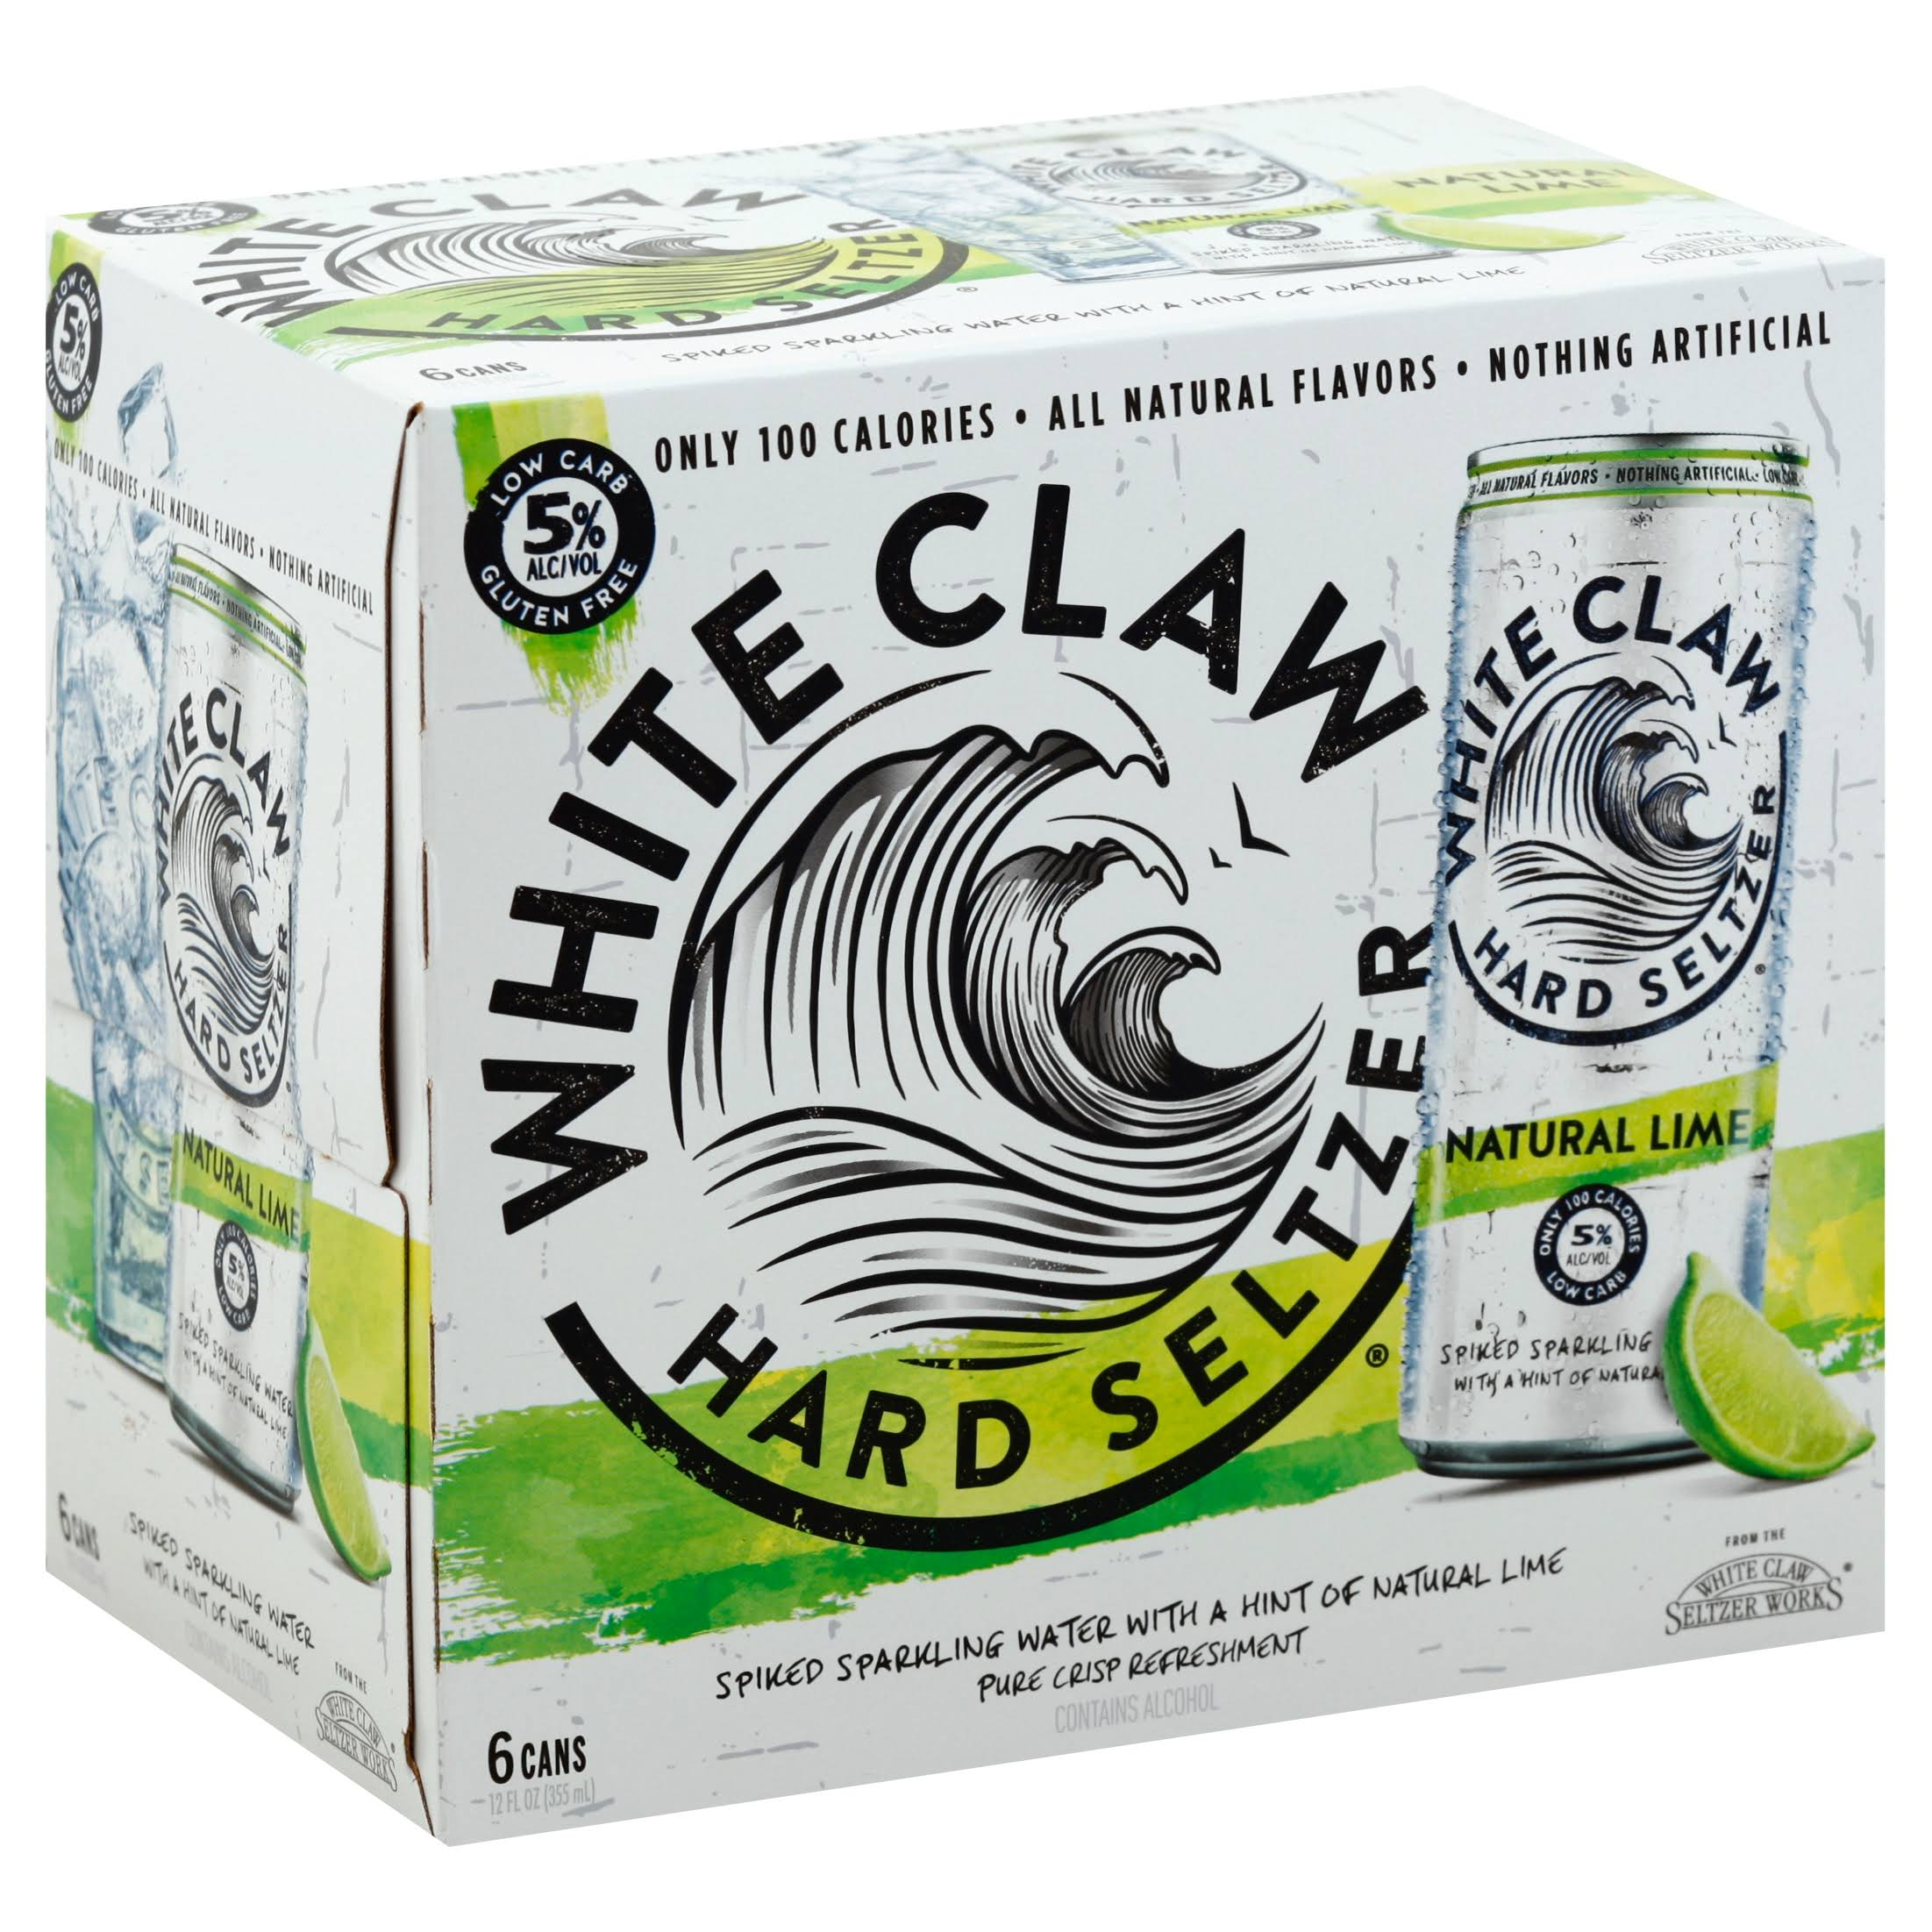 White Claw Hard Seltzer, Natural Lime - 6 pack, 12 fl oz cans